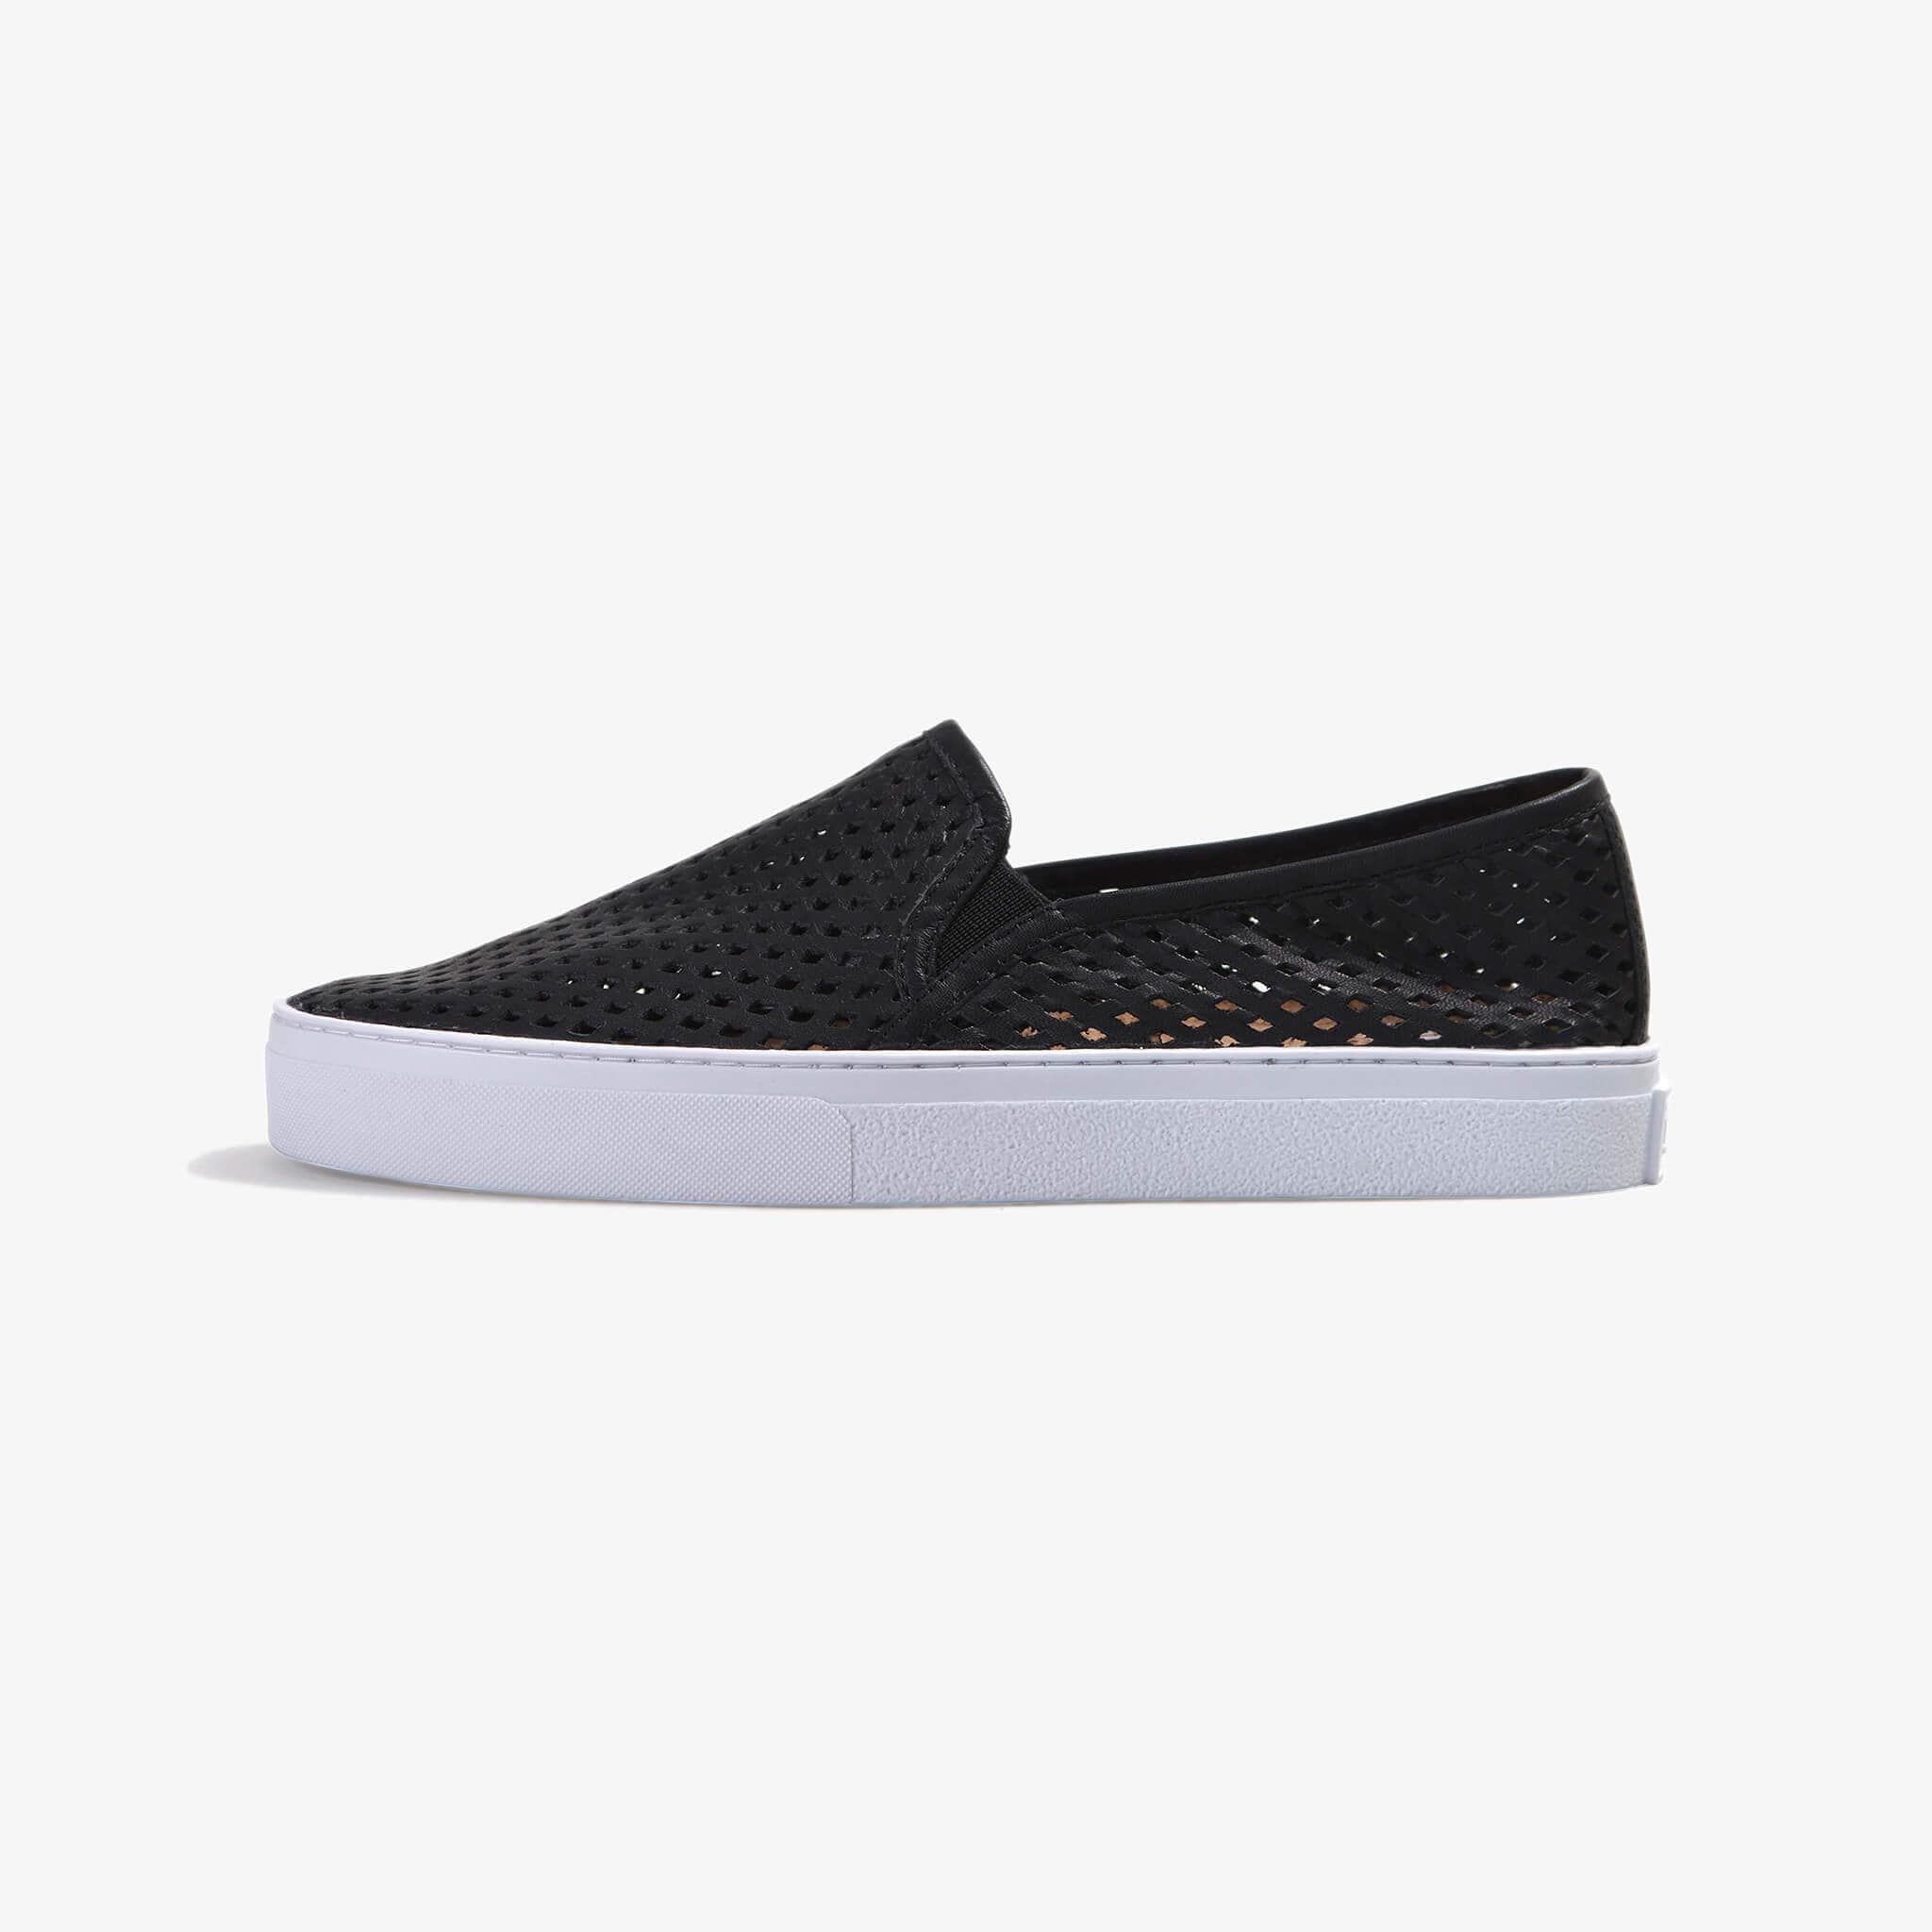 Jibs Classic Jet Black Slip On Sneaker-Shoe Side